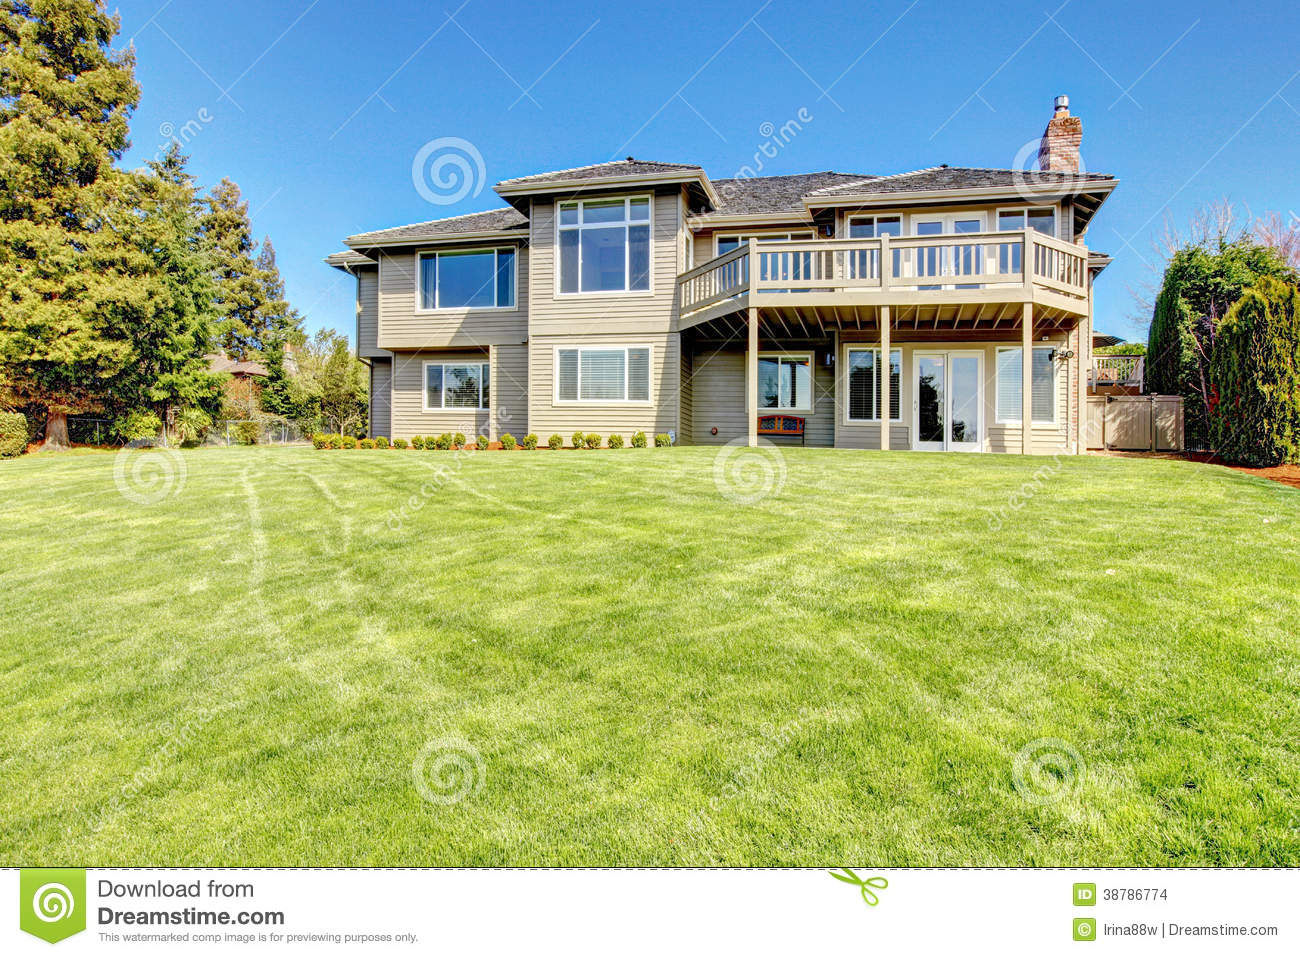 Beautiful siding house view from backyard stock photo for Beautiful house view